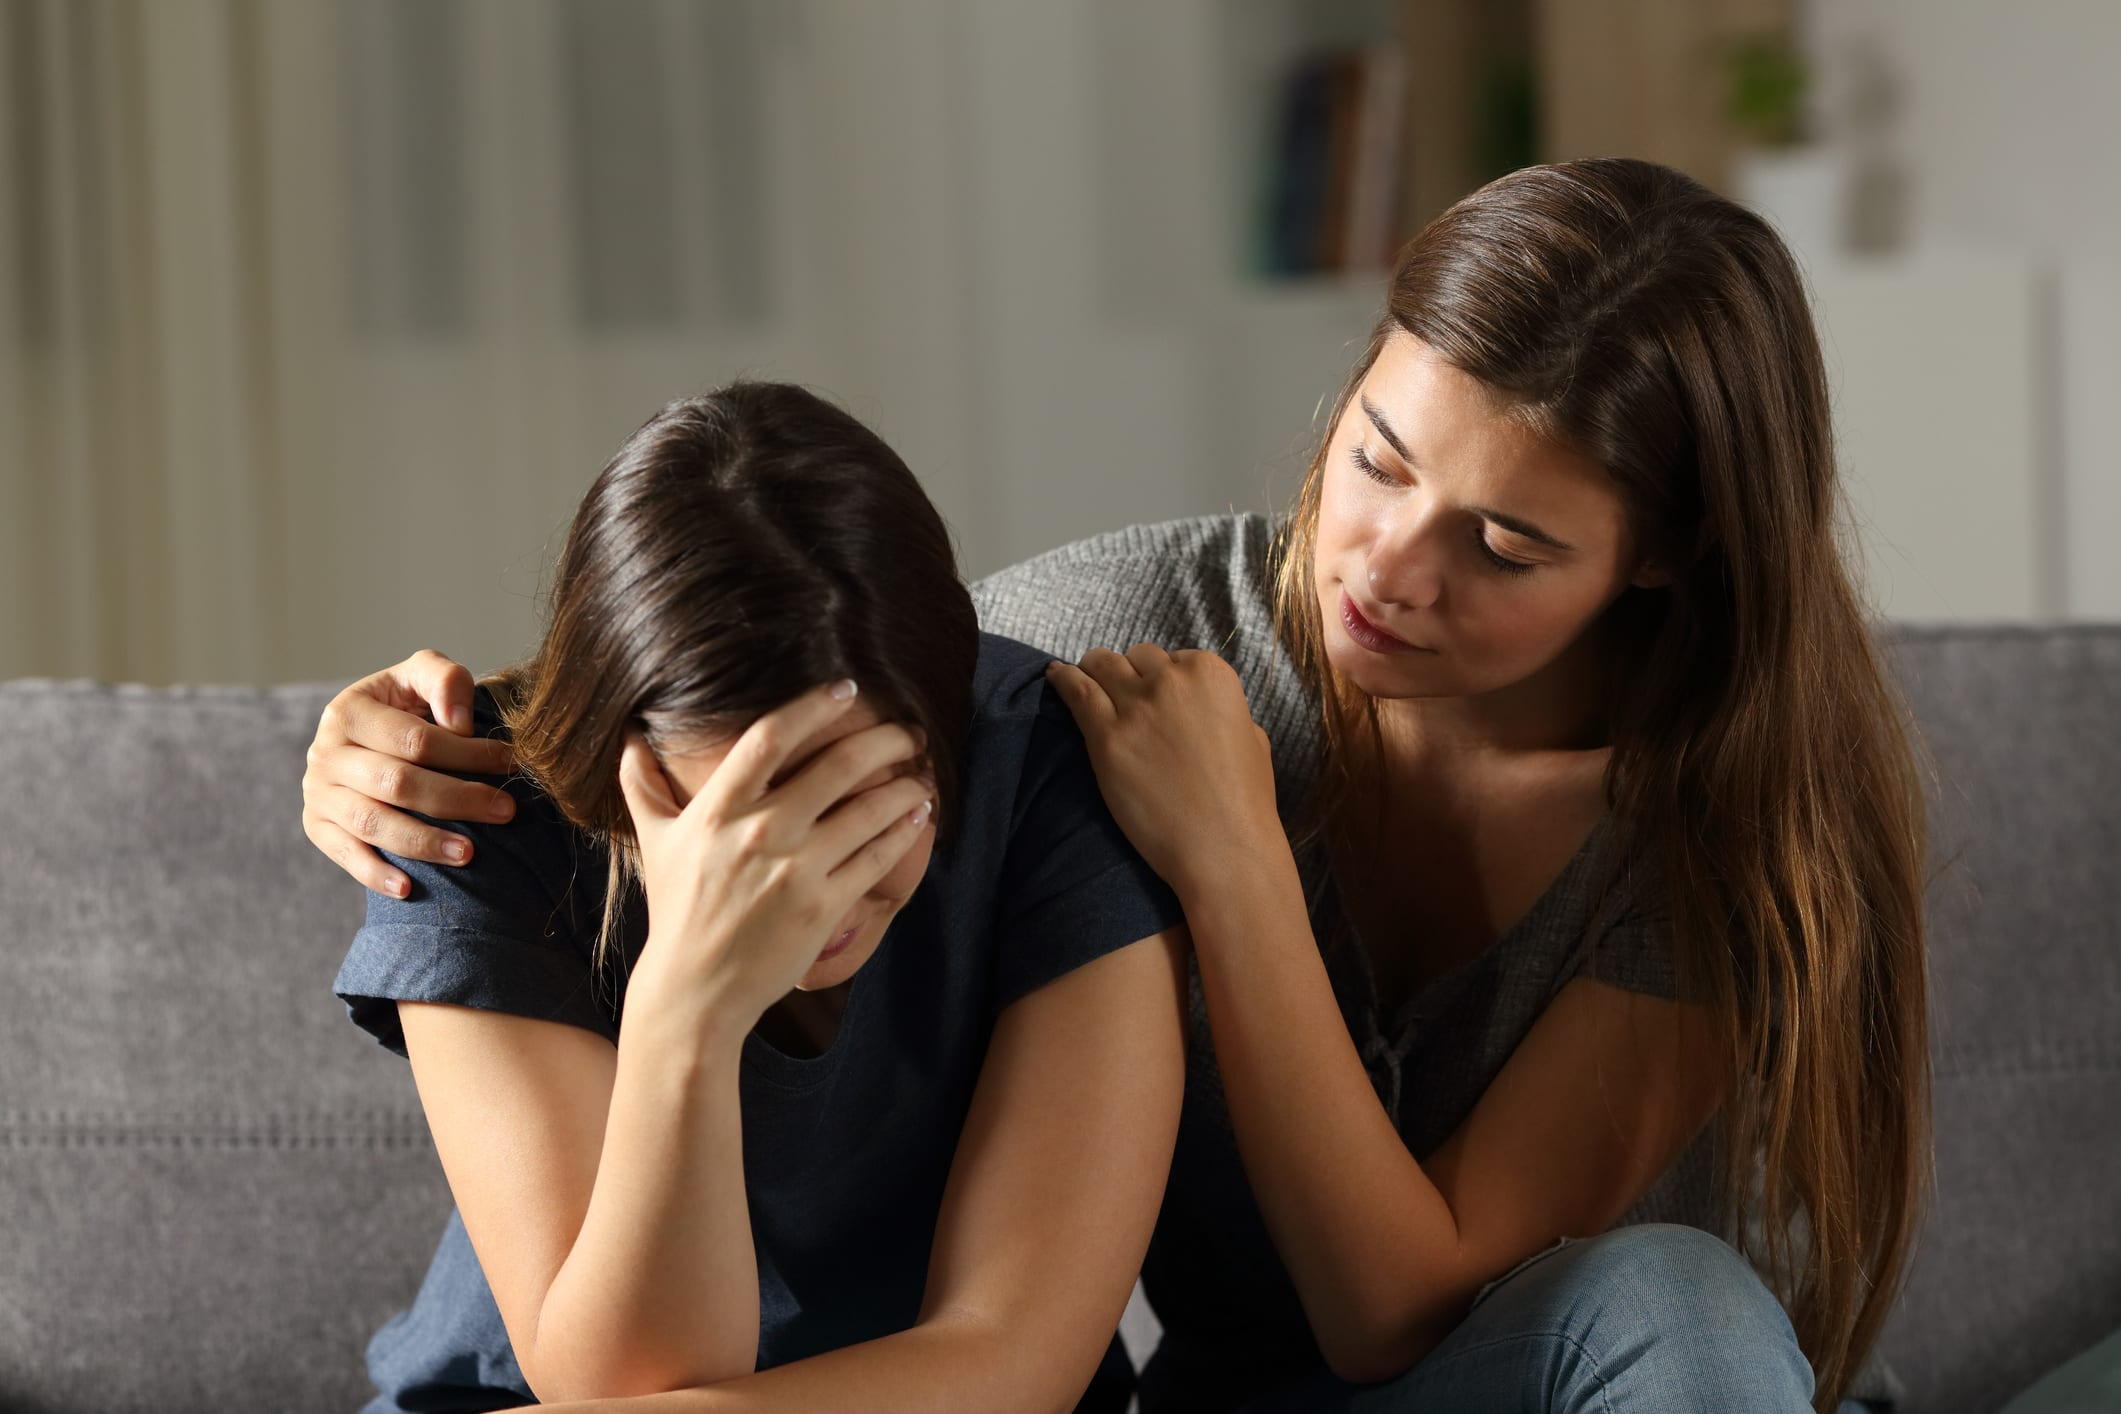 Consoling woman who is upset